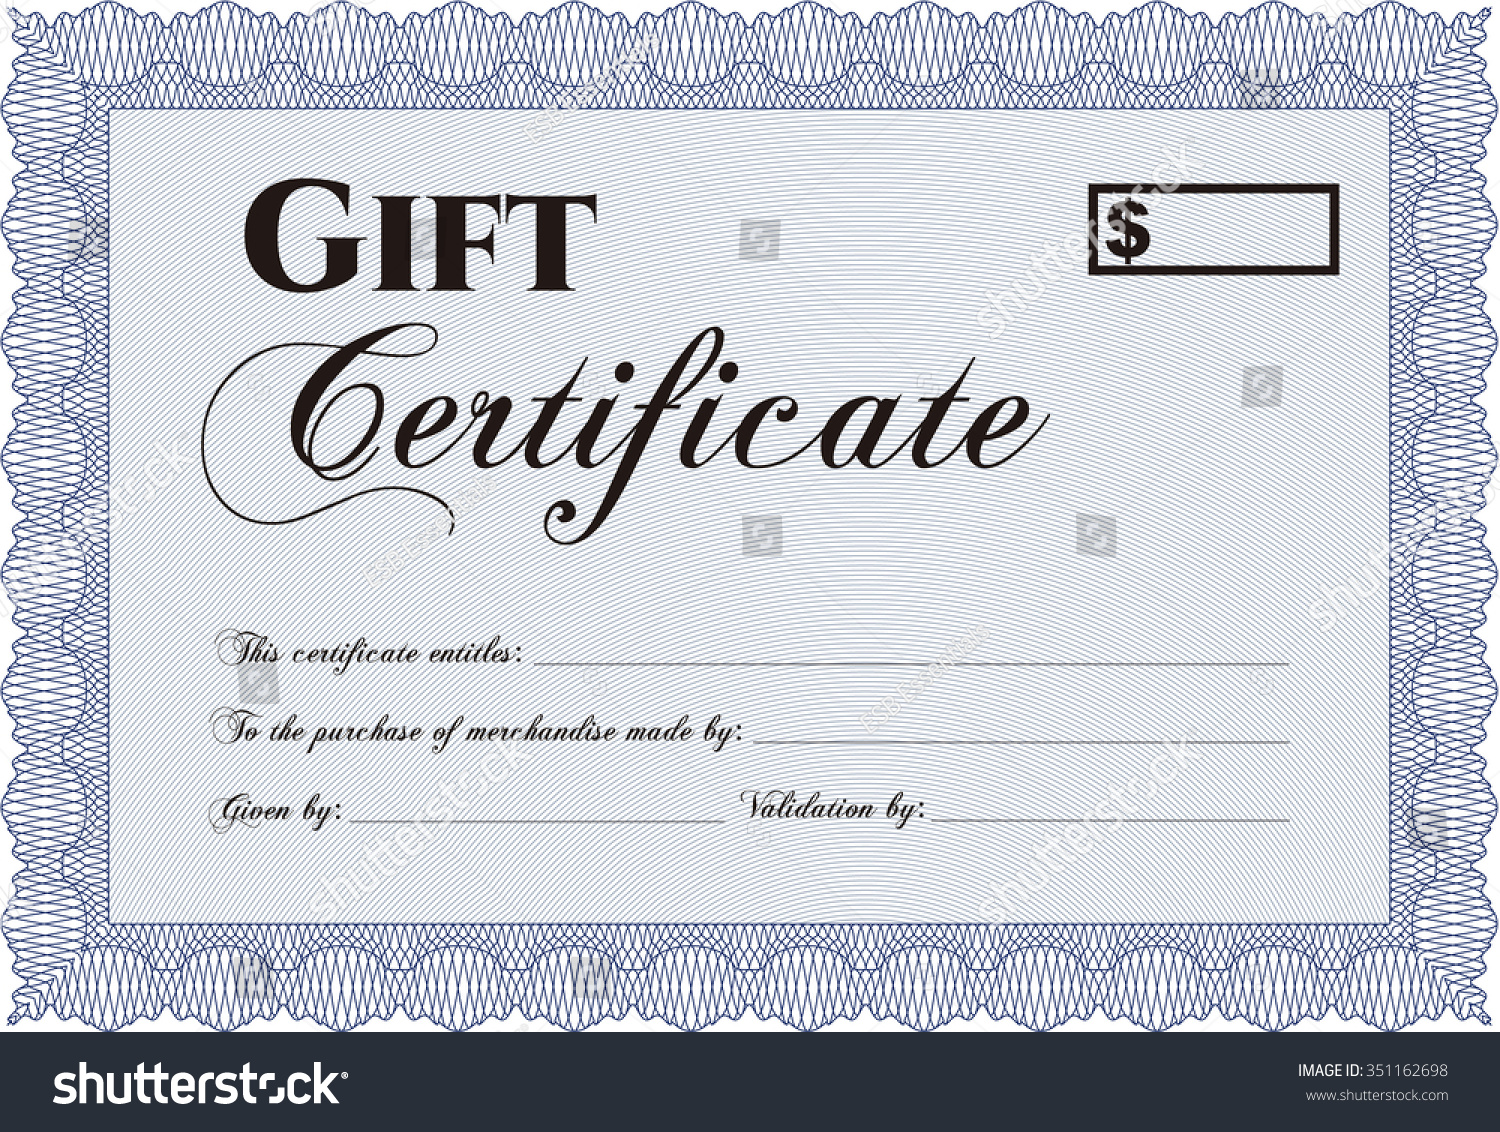 Gift Certificate Template Complex Background Customizable Stock